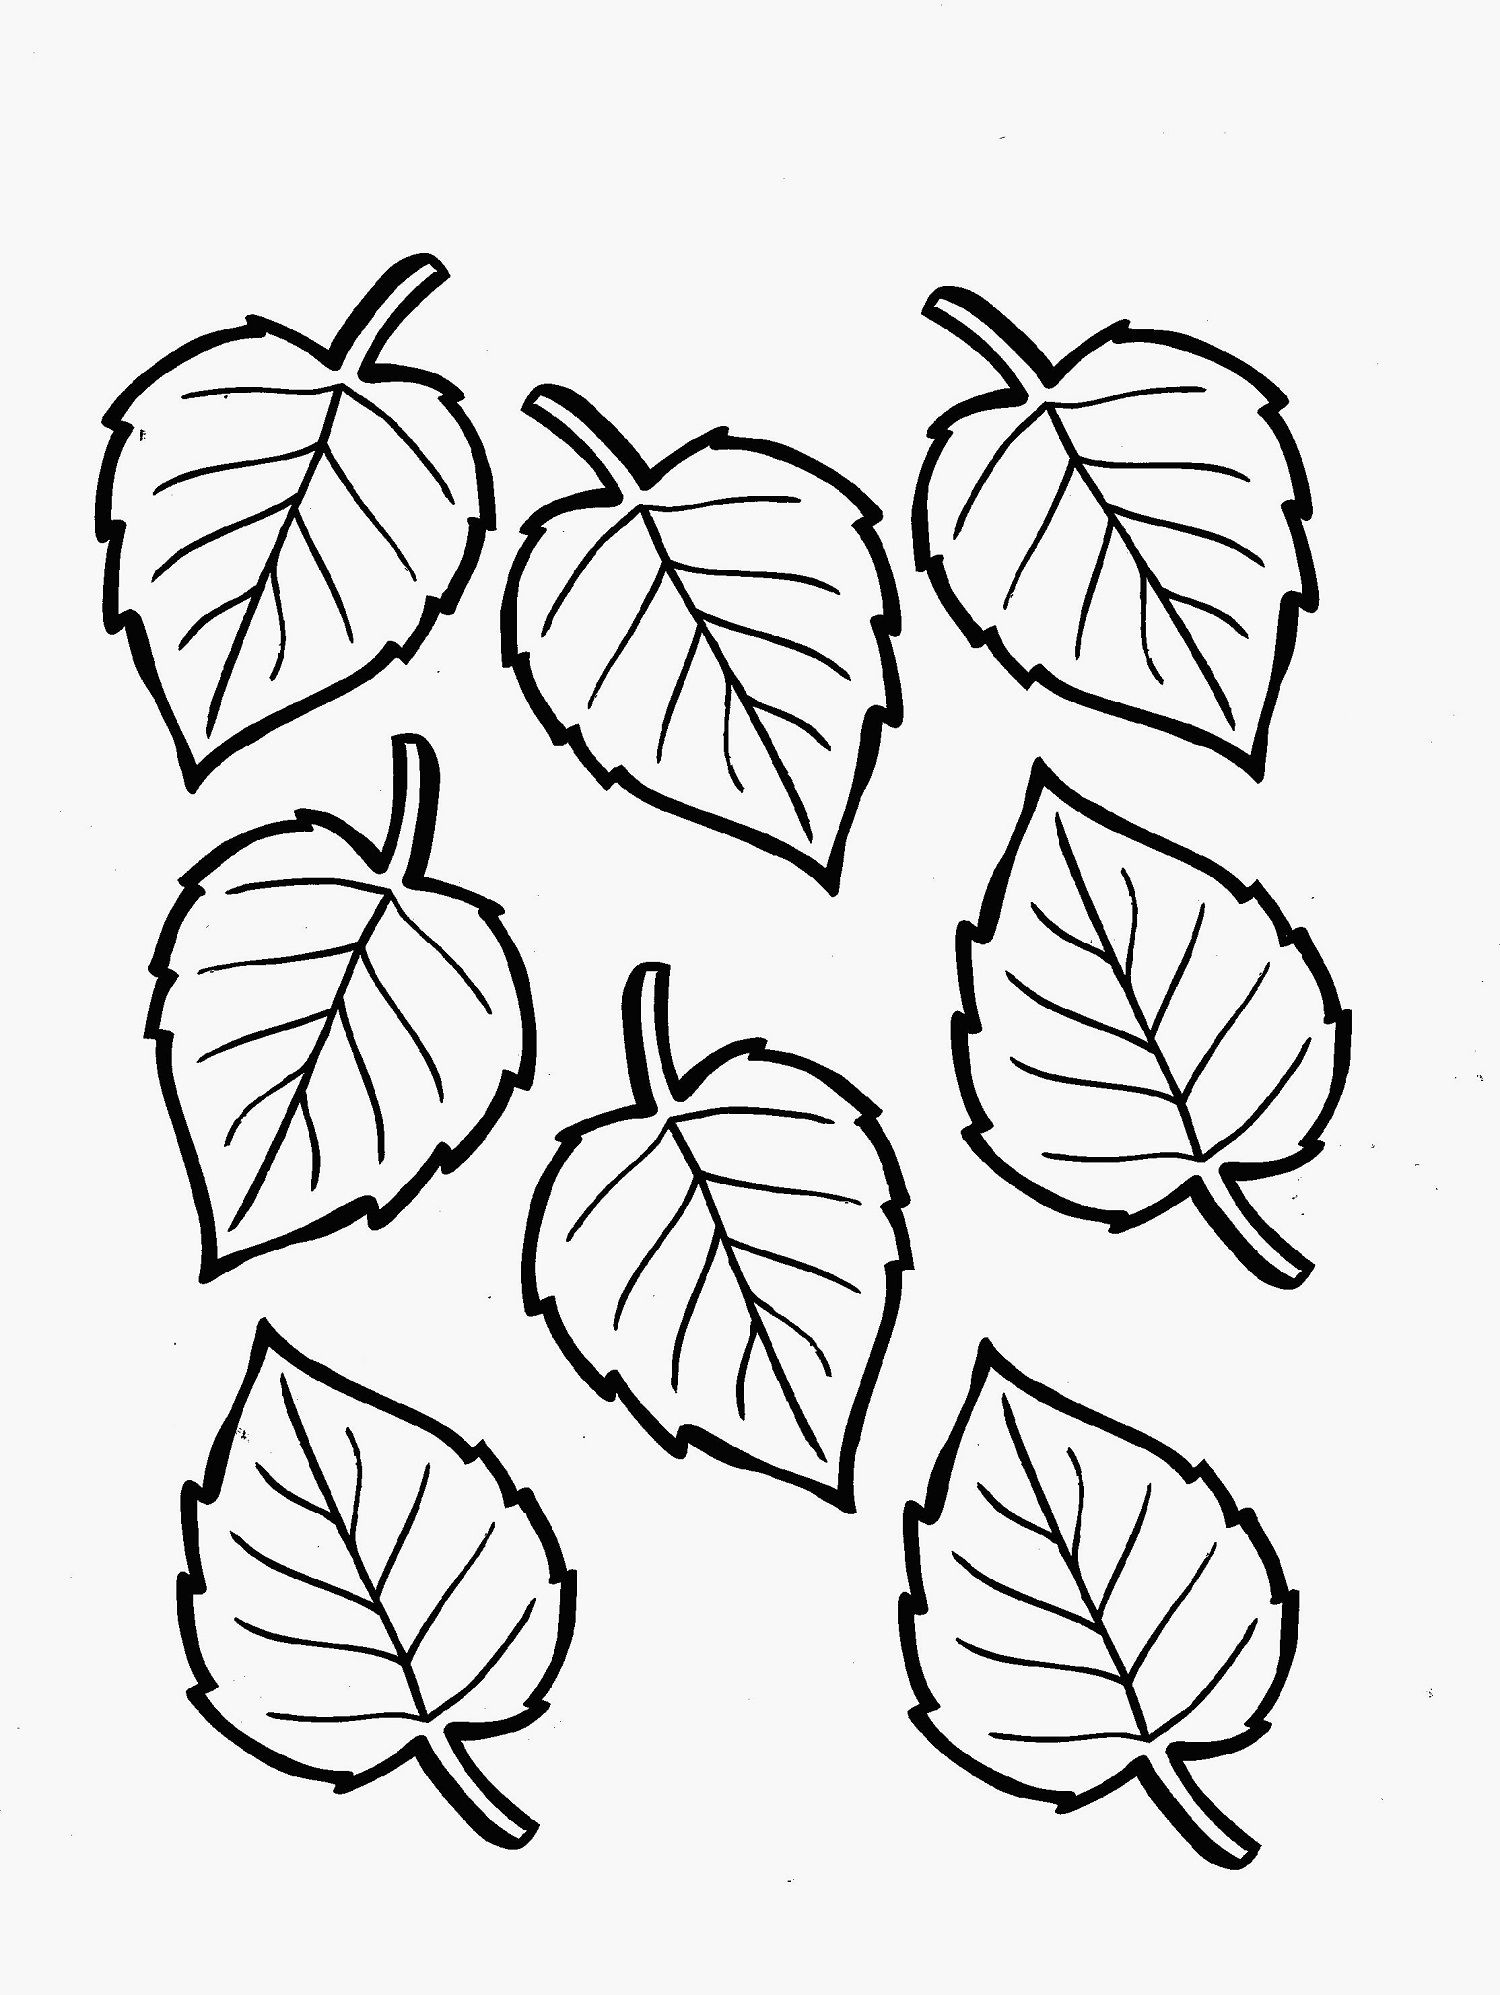 Environmental coloring activities - Leaf Coloring Page For Environment Theme Of Coloring Time Dear Joya